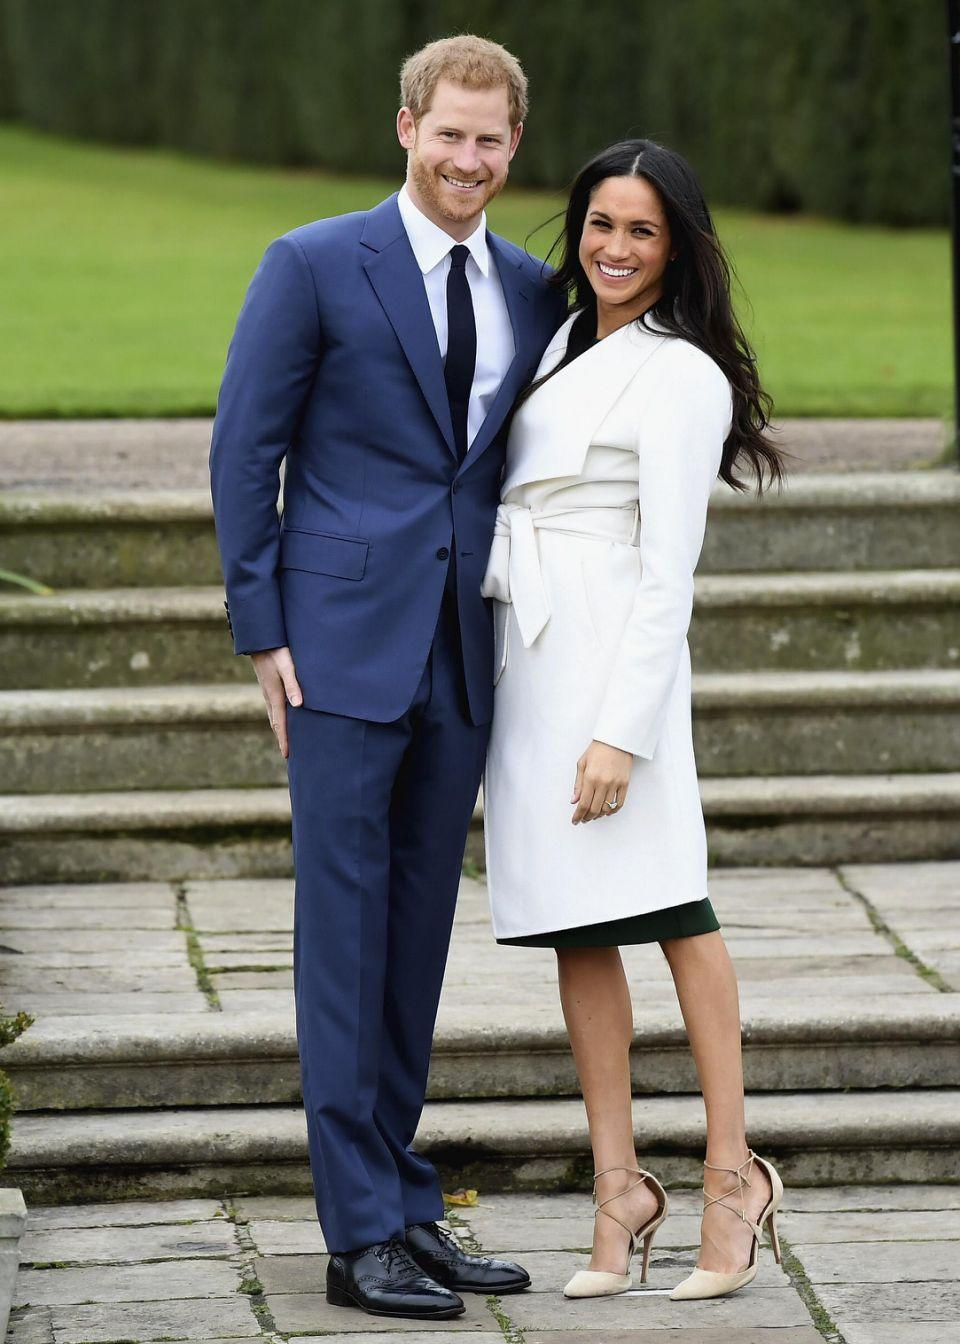 A psychic has predicted what will happen in the royal family this year. Photo: Getty Images